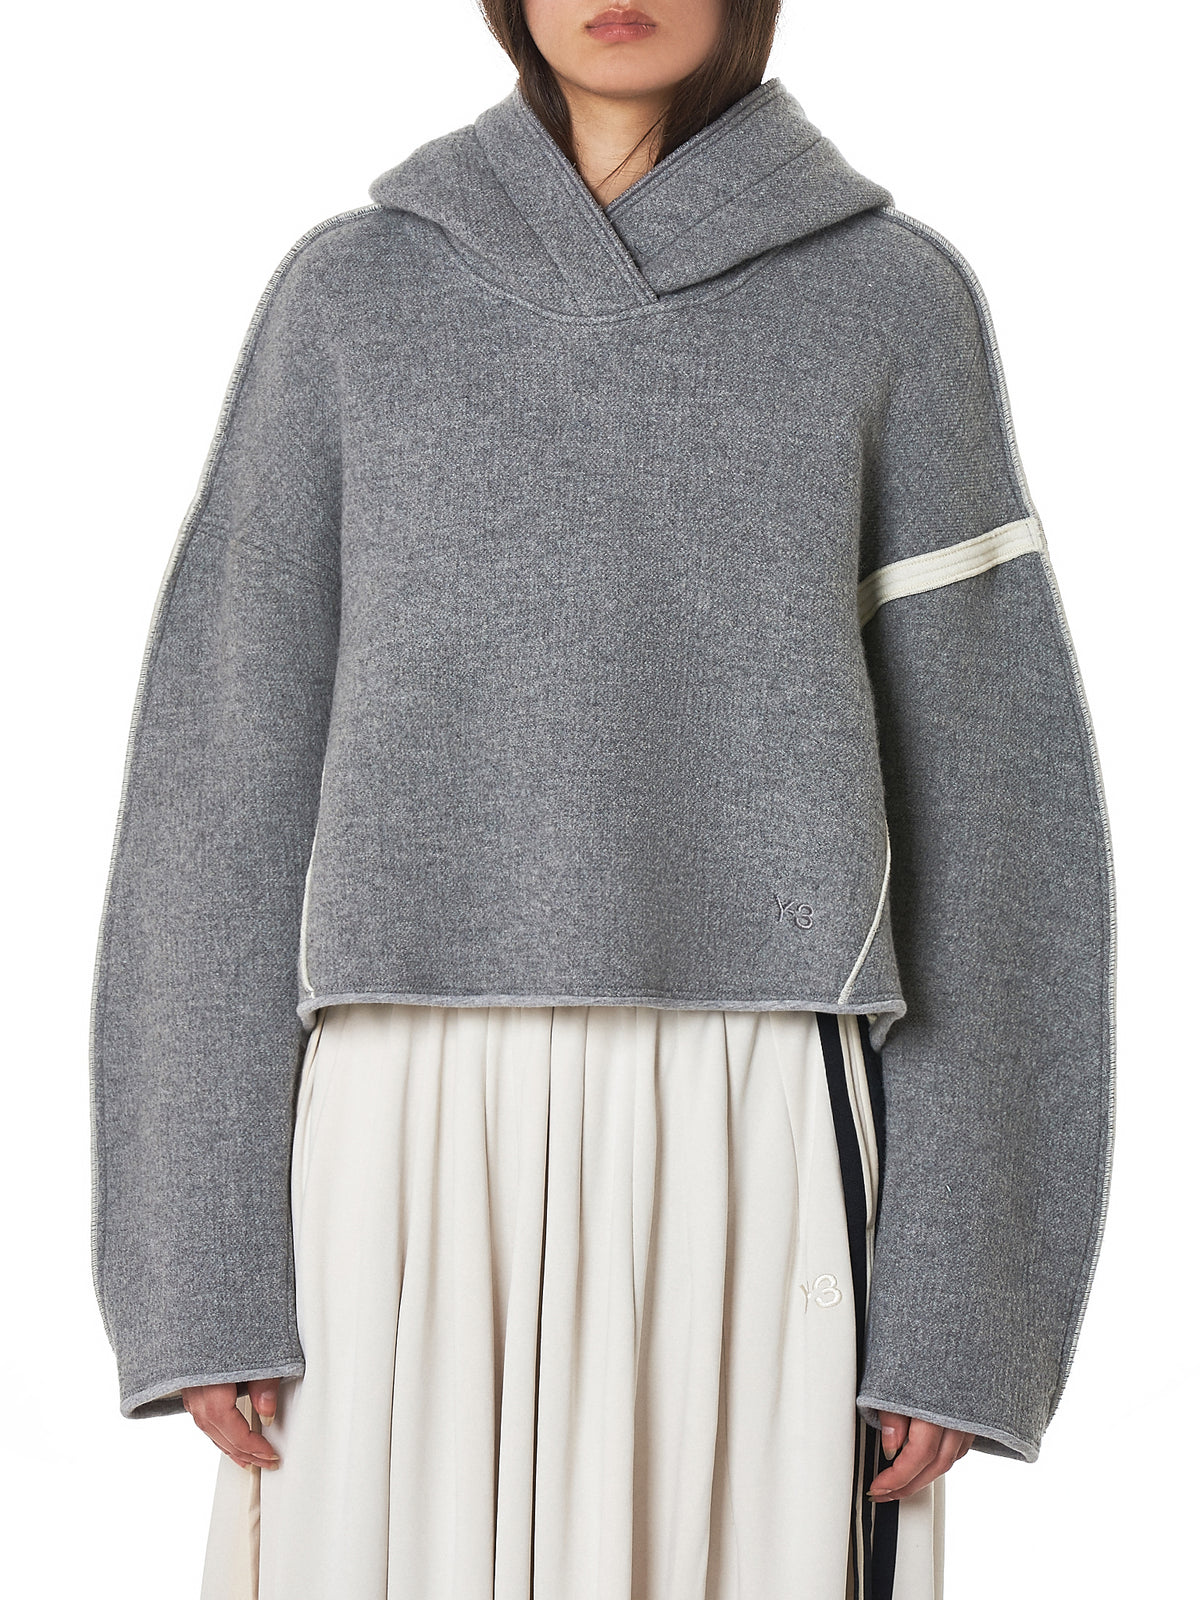 Scuba Hooded Pullover (DP0717-MGH-GREY)